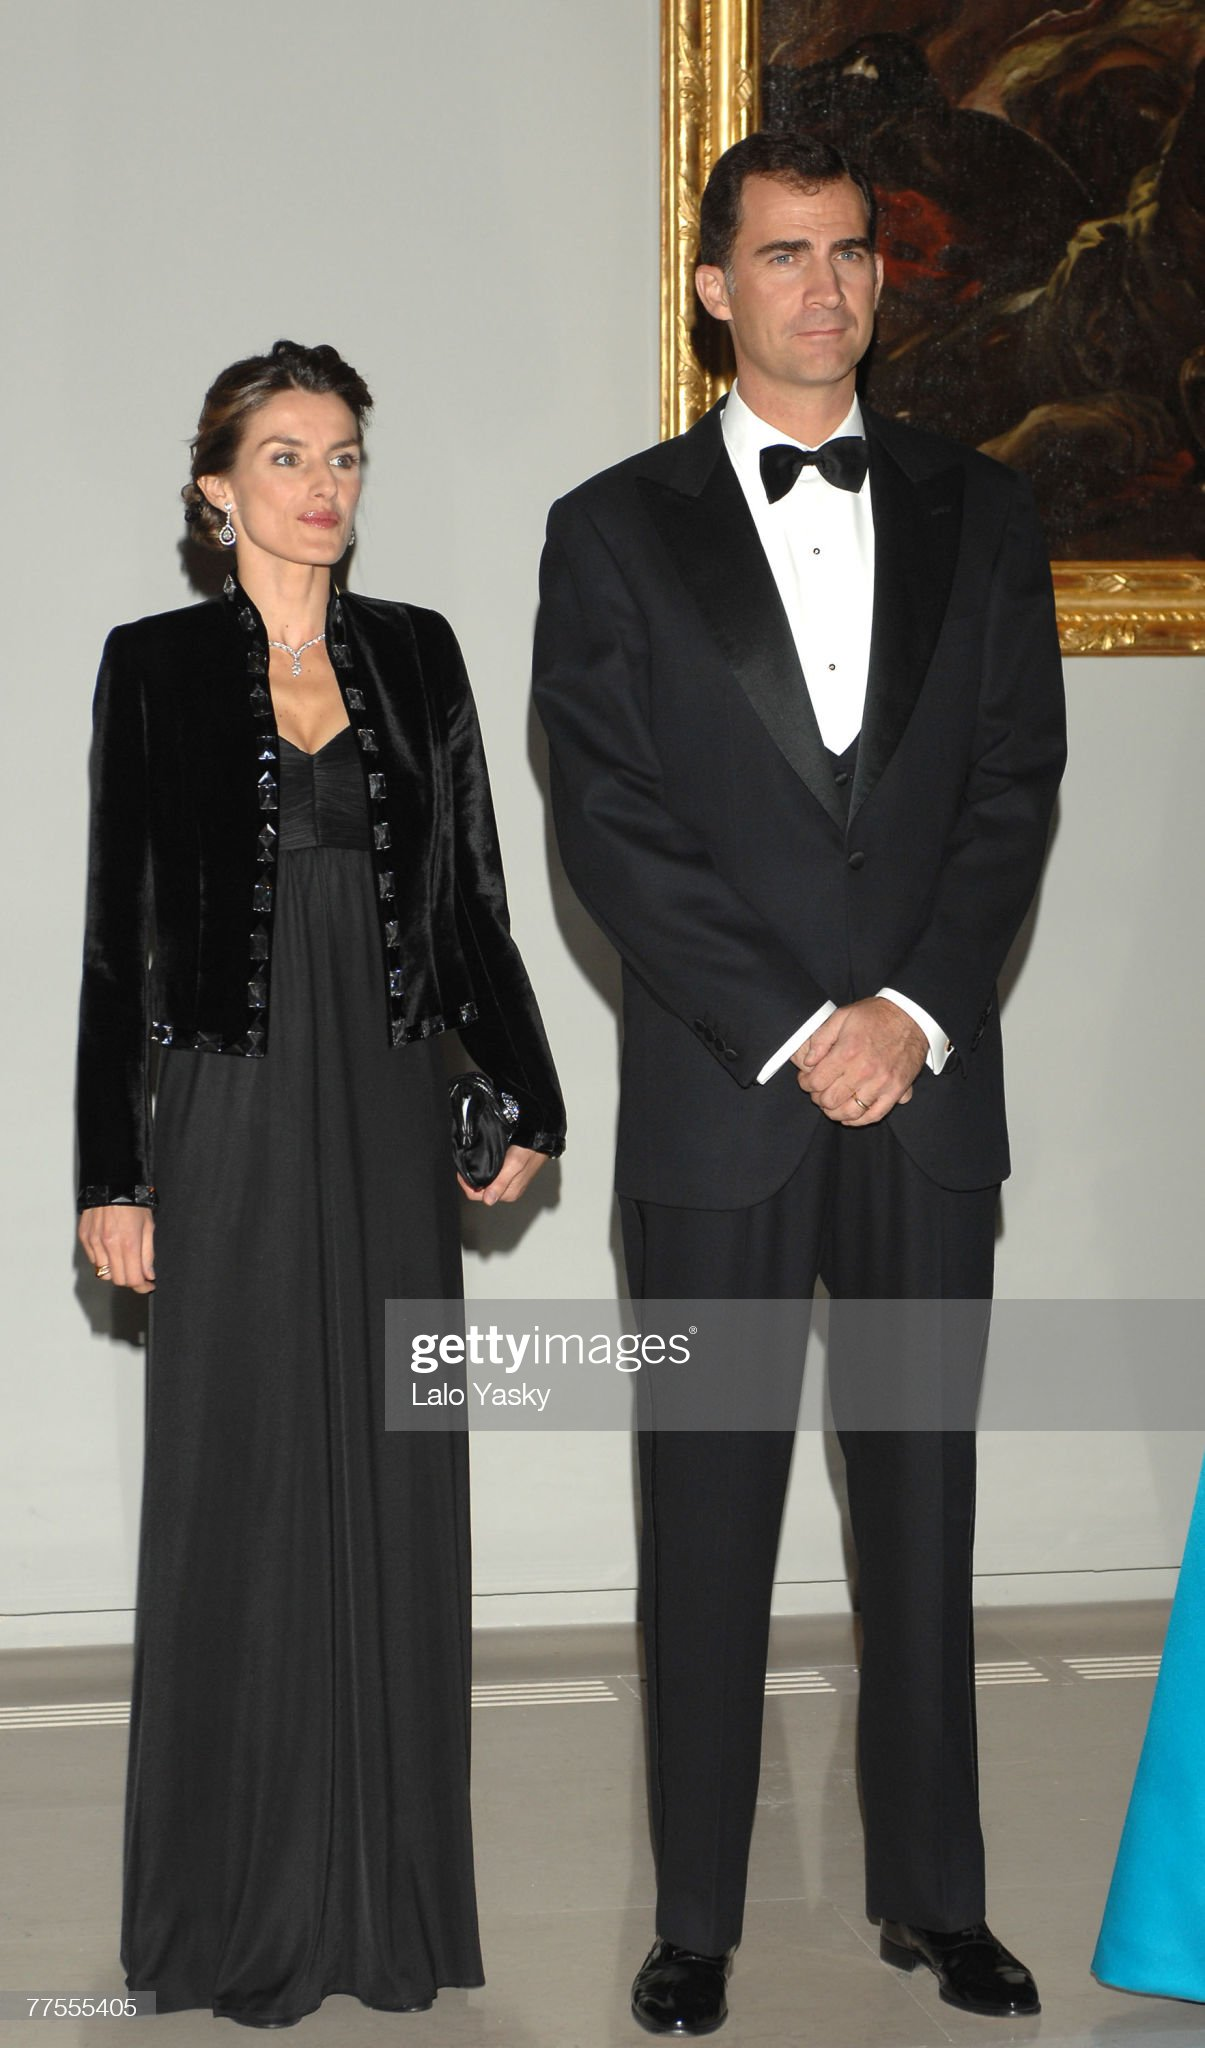 Spanish Royals Attend Opening Of Extension At El Prado Museum : News Photo